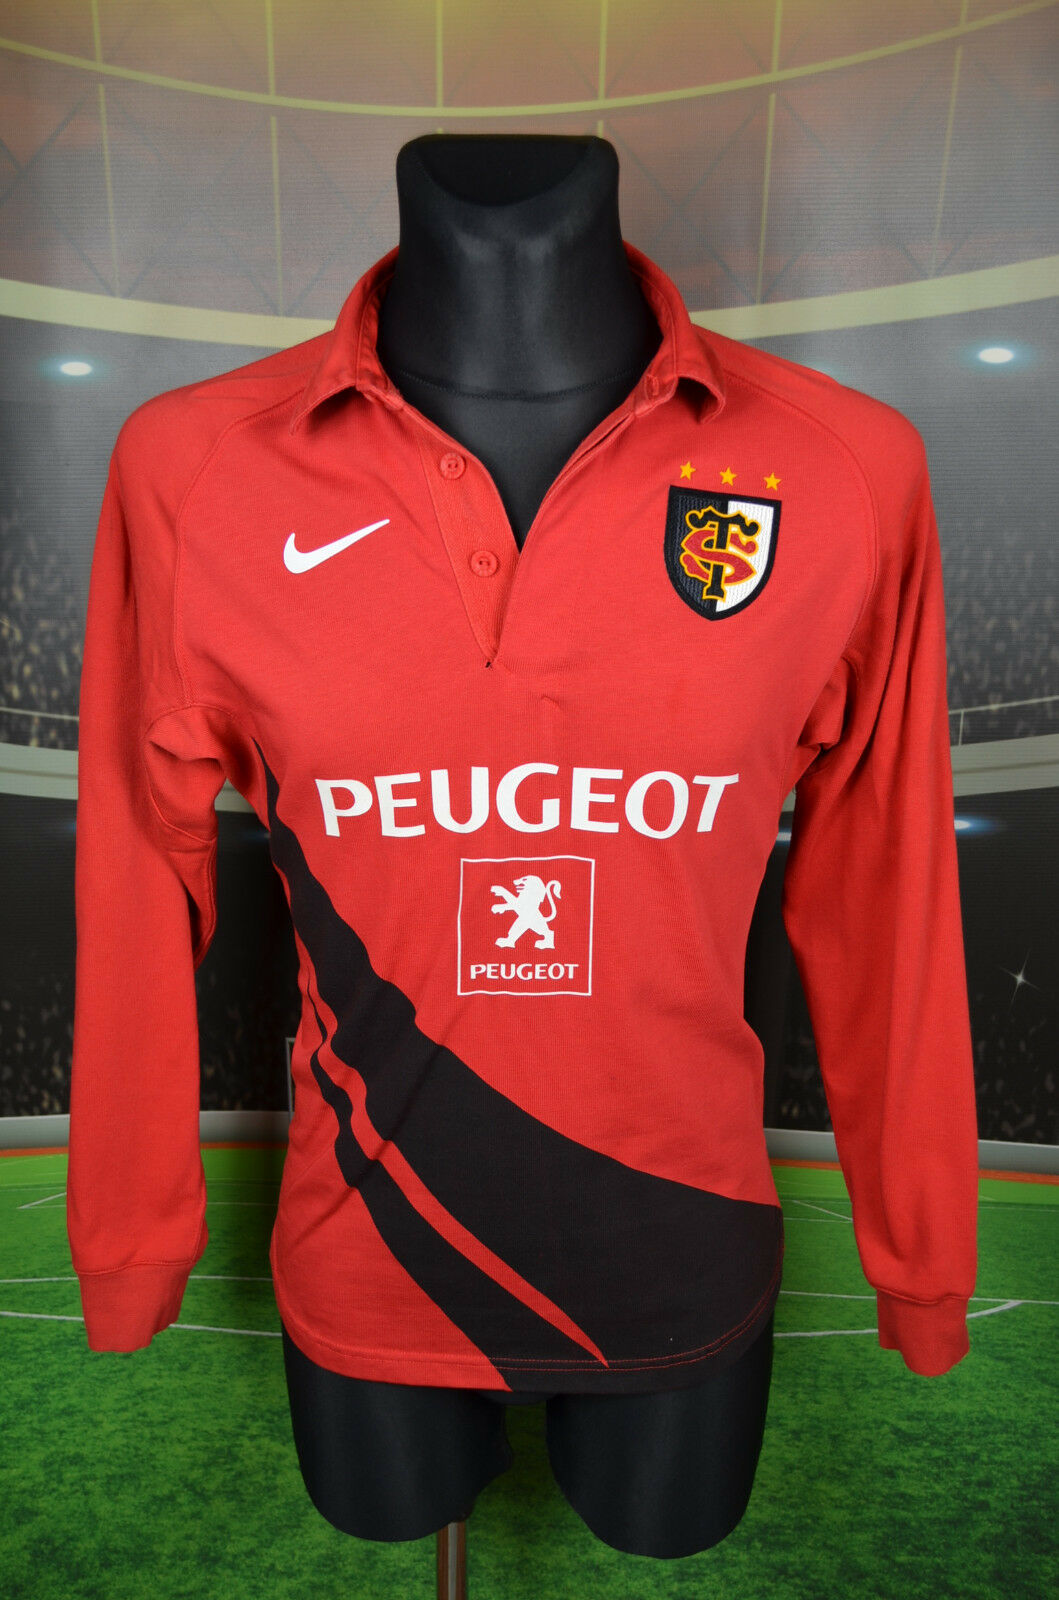 TOULOUSE NIKE RUGBY FOOTBALL SHIRT (S 36 38 44 48) JERSEY TOP MAILLOT L S TRIKOT